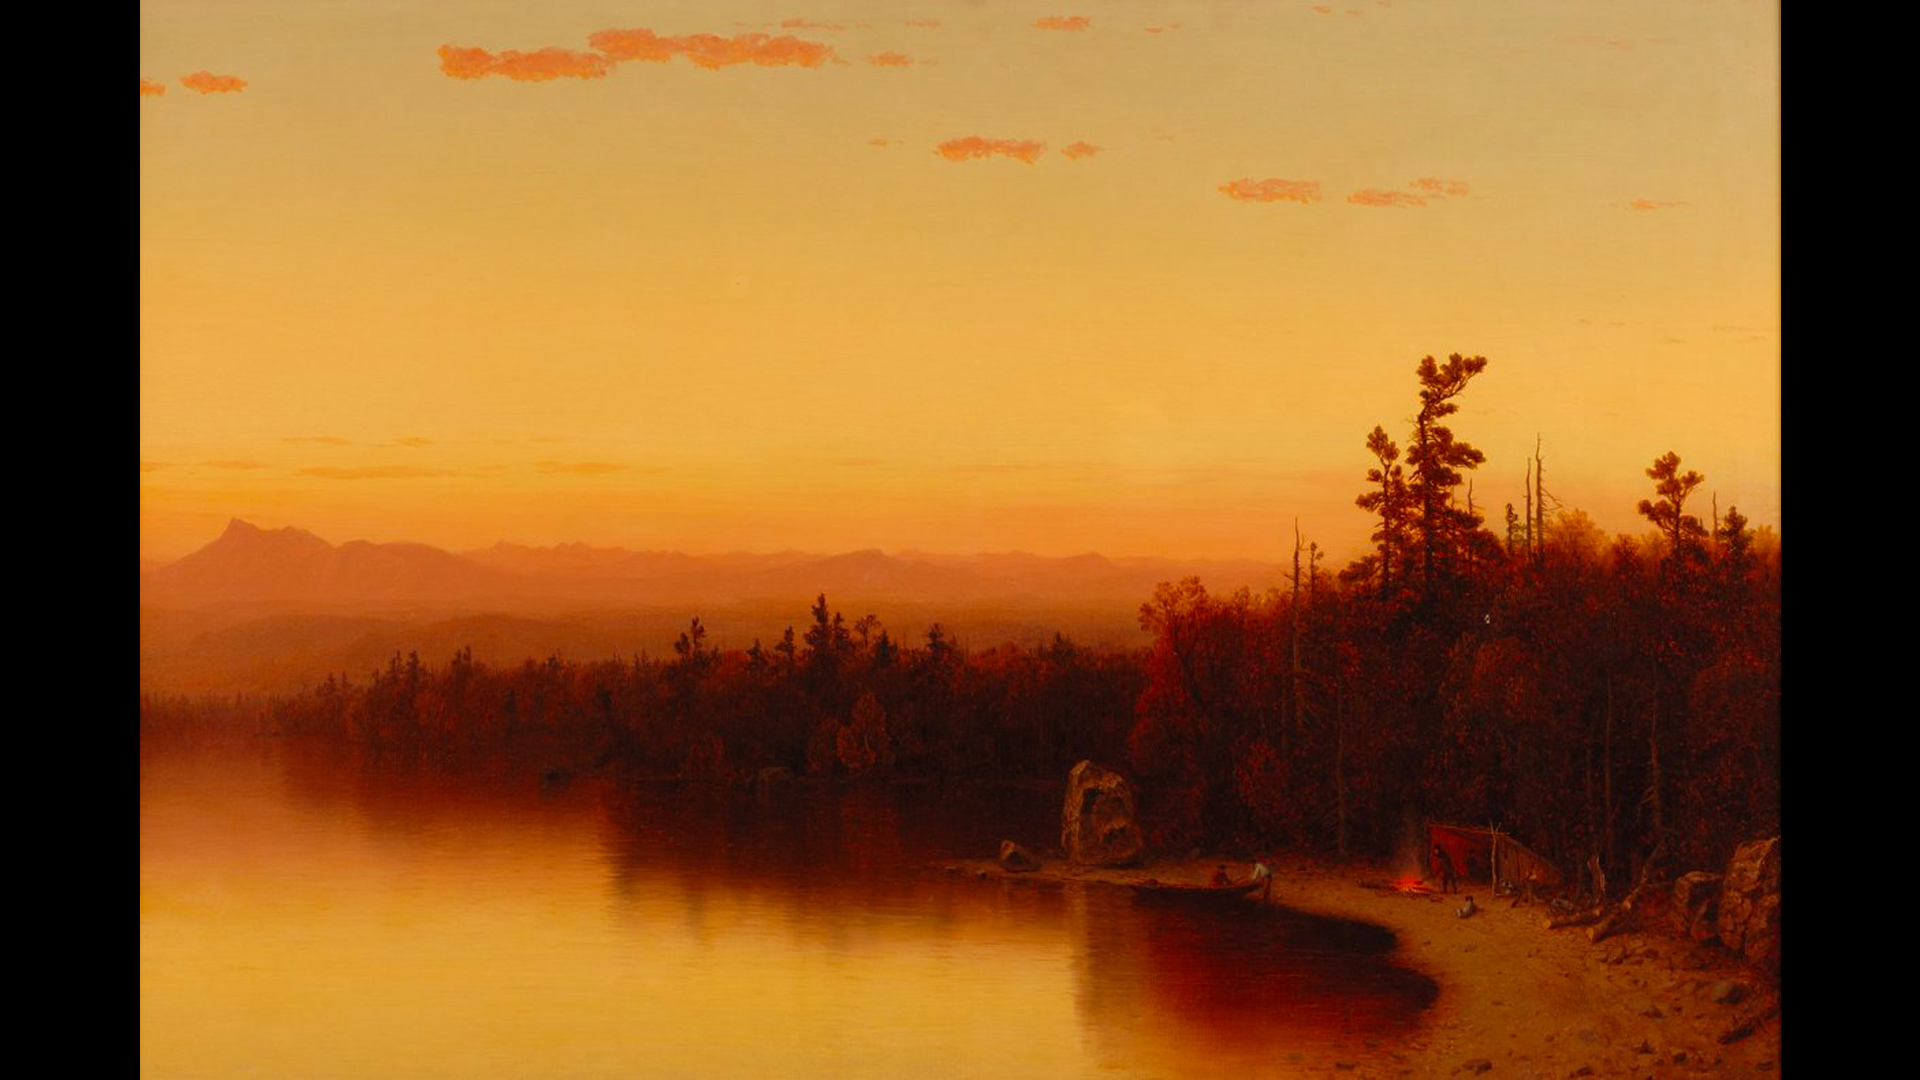 Twilight scene, lake entering from right foreground to left background reflects the sunset and brilliant sky which covers the upper half of the canvas.